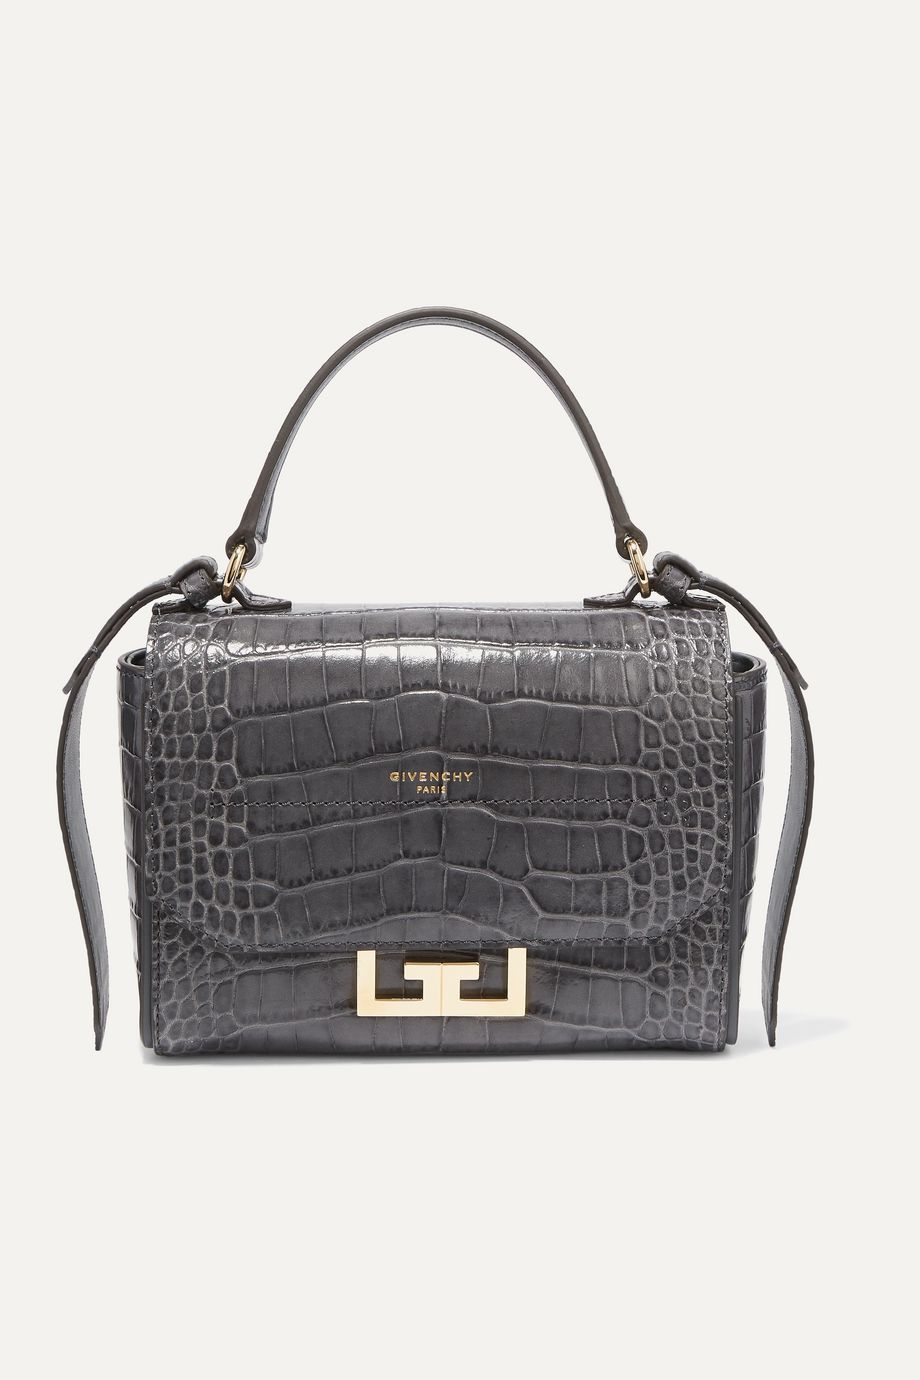 Givenchy Eden mini croc-effect leather shoulder bag